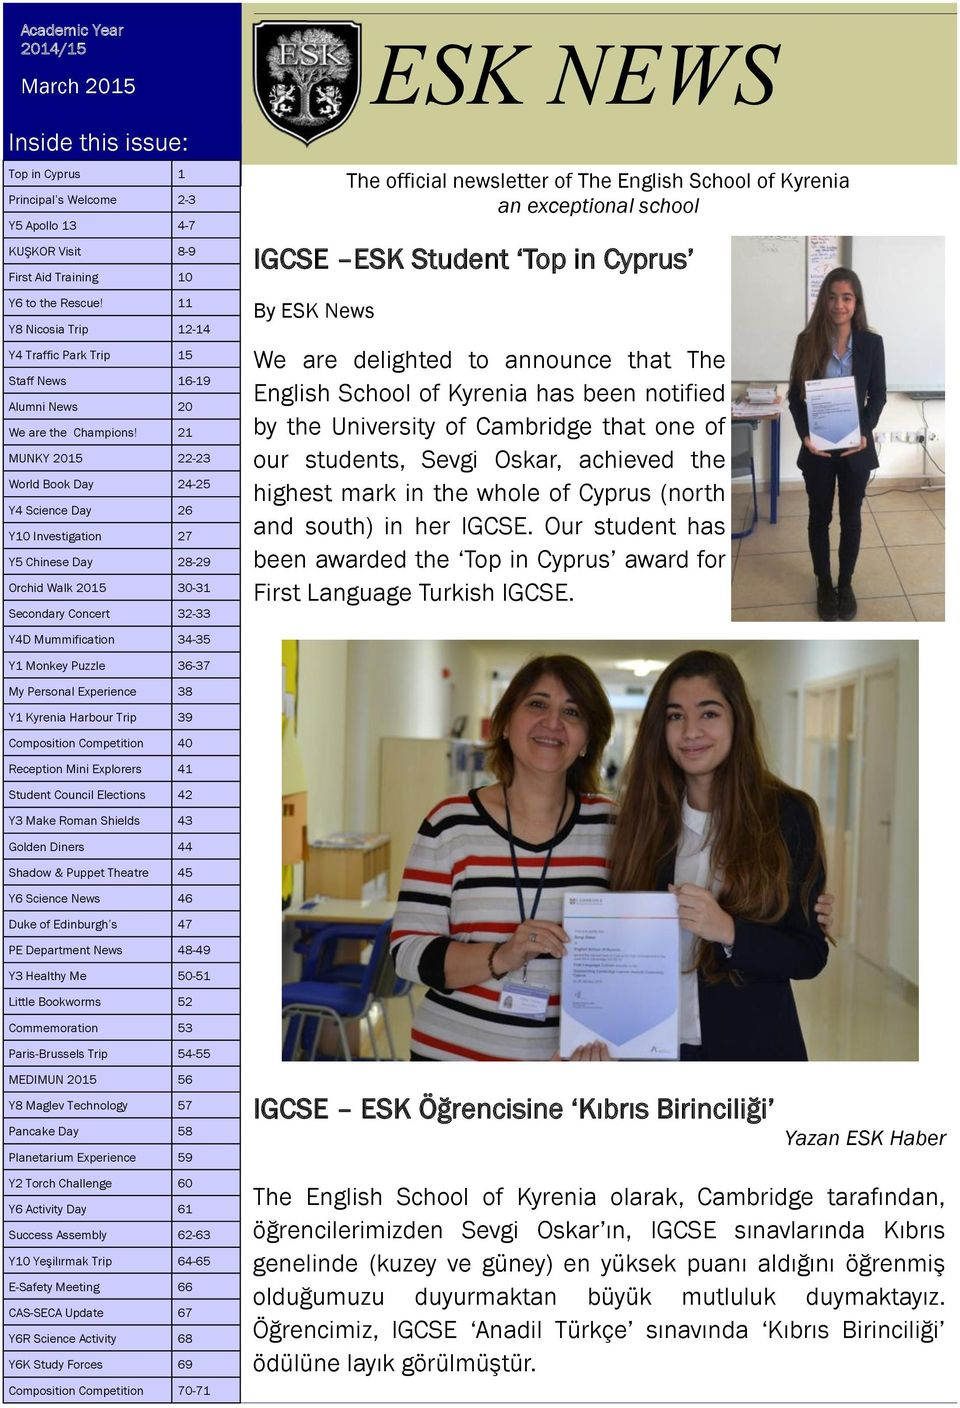 21 MUNKY 2015 22-23 World Book Day 24-25 Y4 Science Day 26 Y10 Investigation 27 Y5 Chinese Day 28-29 Orchid Walk 2015 30-31 Secondary Concert 32-33 IGCSE ESK Student Top in Cyprus By ESK News ESK